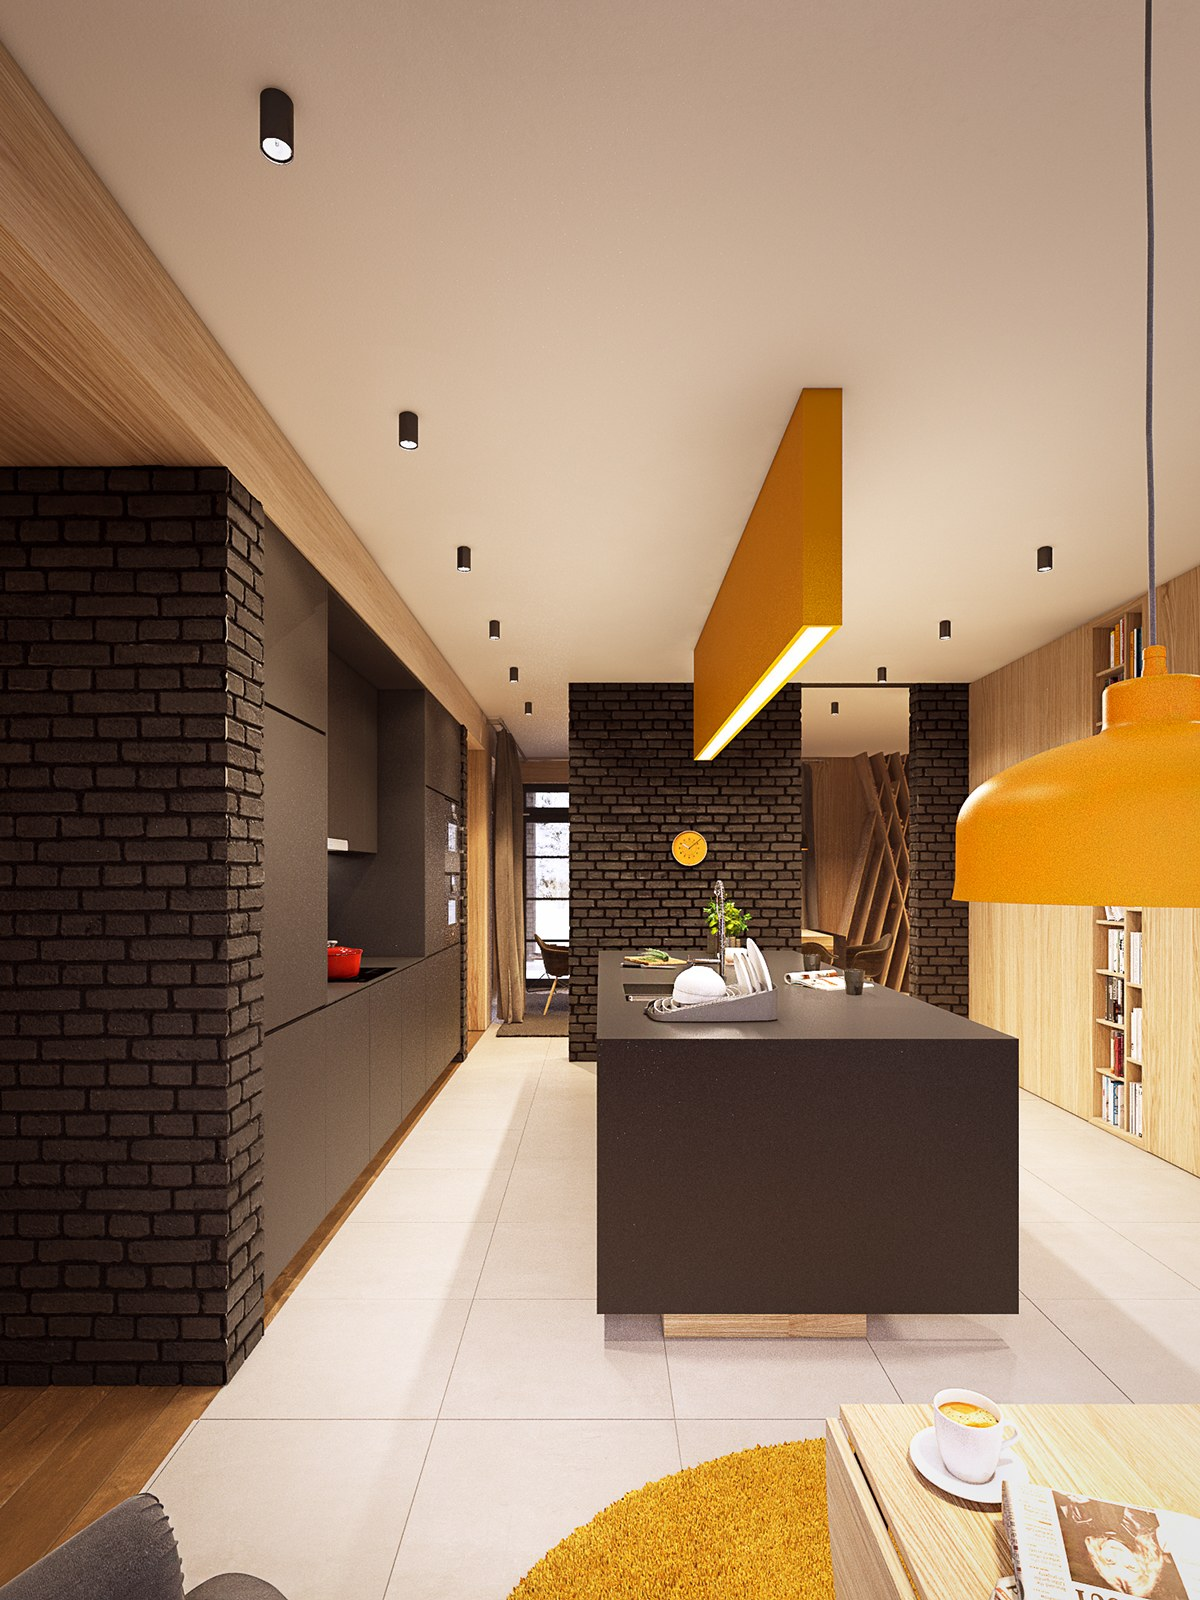 brick-and-wood kitchen design